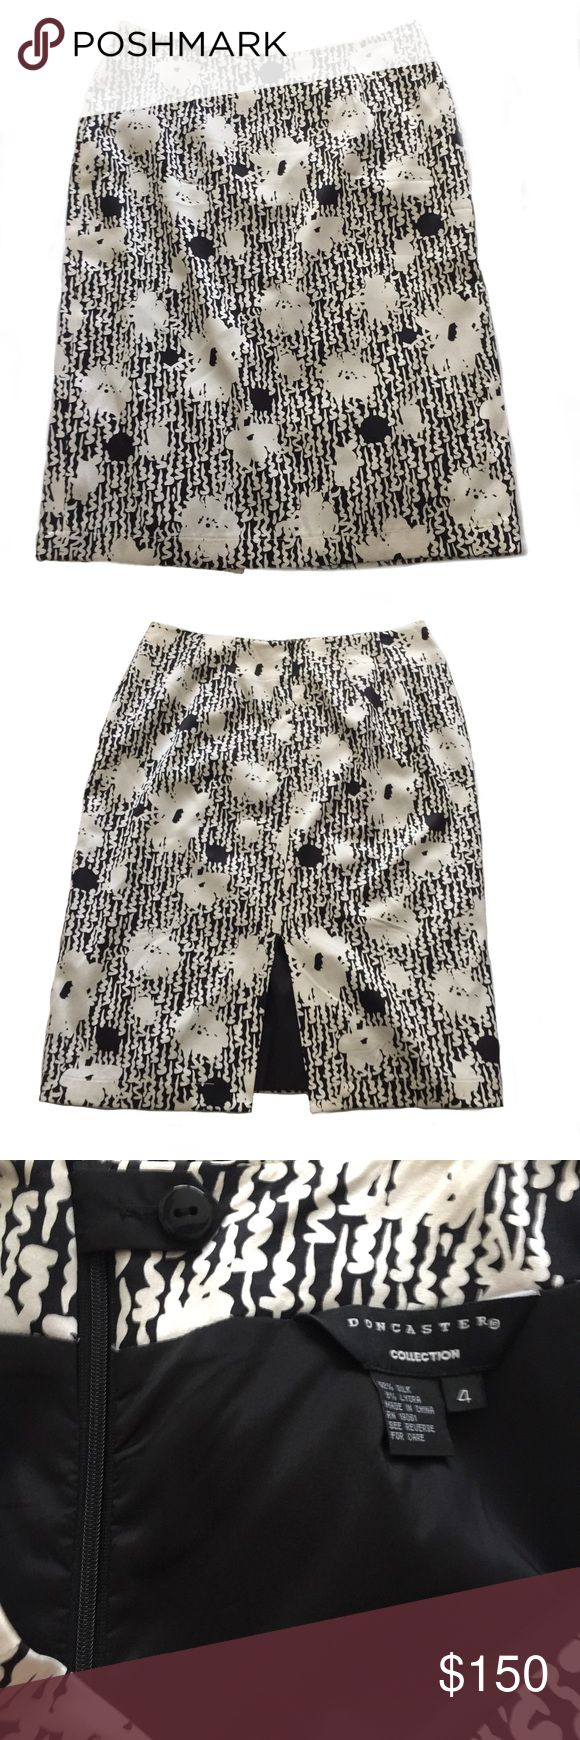 Doncaster Black and Ivory Silk Floral Pencil Skirt Doncaster Black and Ivory Silk Floral Pencil Skirt - Fully Lined -92% Silk - Lycra for Comfort and Stretch - Back Slit - Hidden Back Zipper  Size: 4 Condition: Like New  Make an Offer or Bundle with 2 Items for 20% Off. Doncaster Skirts Pencil